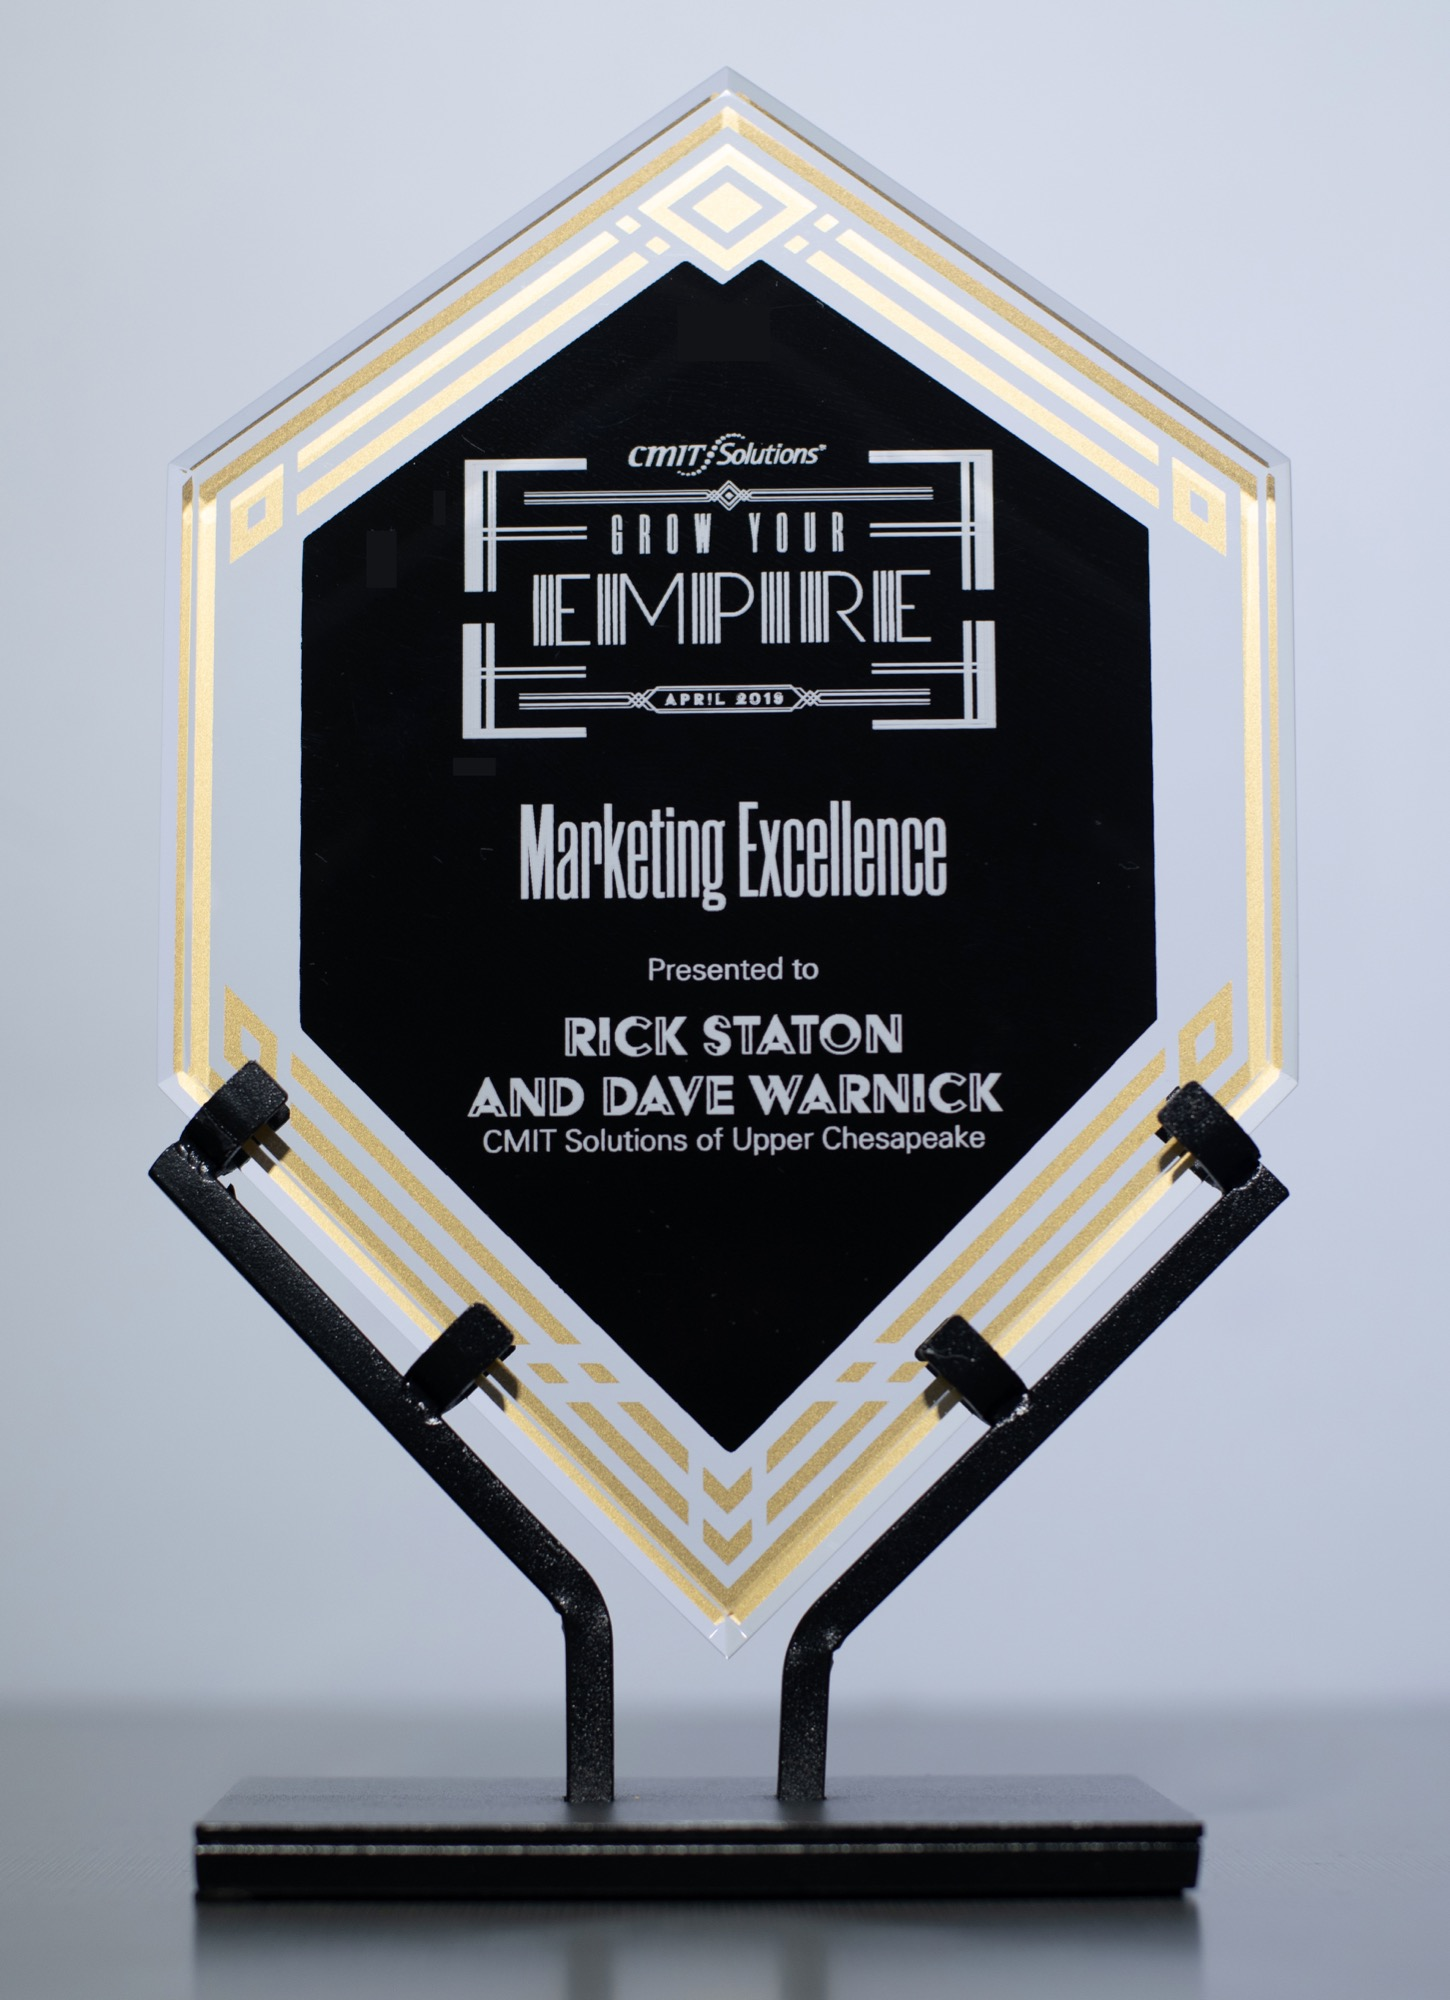 CMIT Solutions Marketing Excellence Award